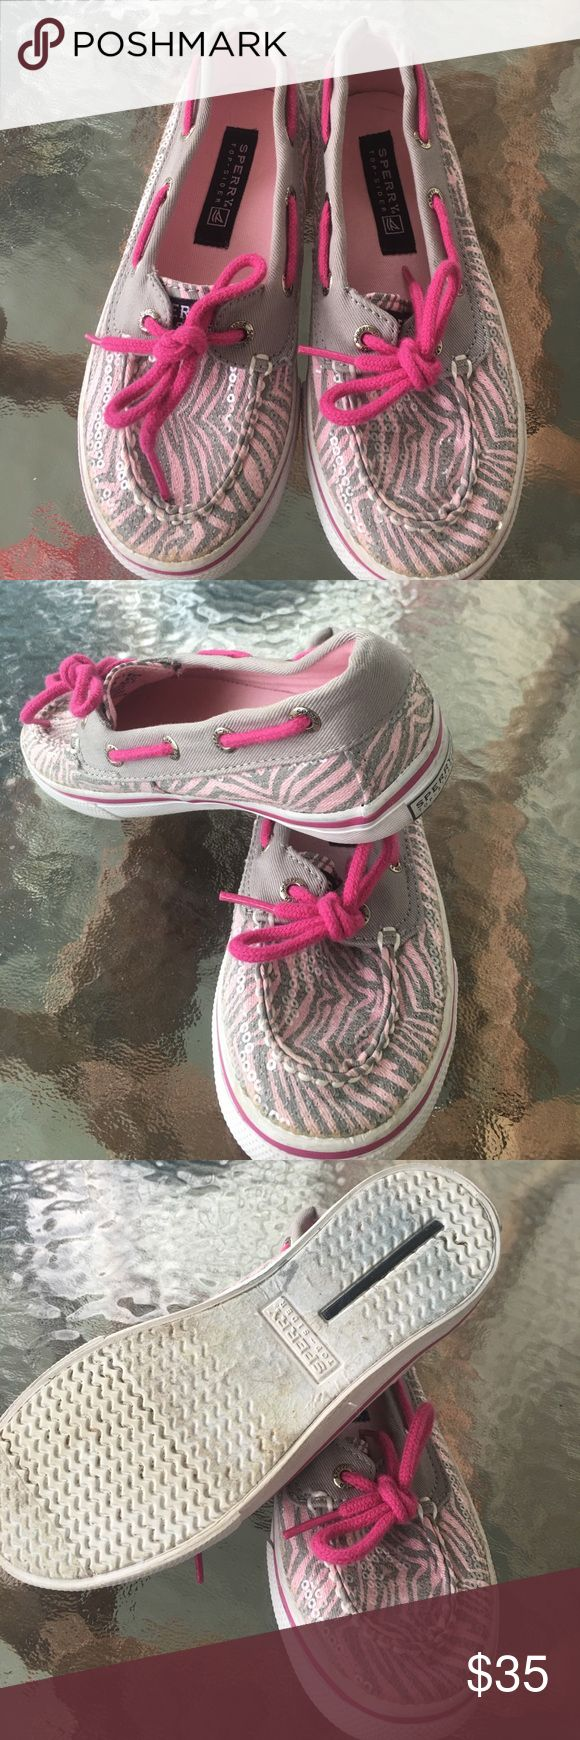 Girls size 12.5 SPERRY pink and gray sparkly shoes Like new adorable girls SPERRY size 12.5 gray and pink sparkly shoes. Sperry Top-Sider Shoes